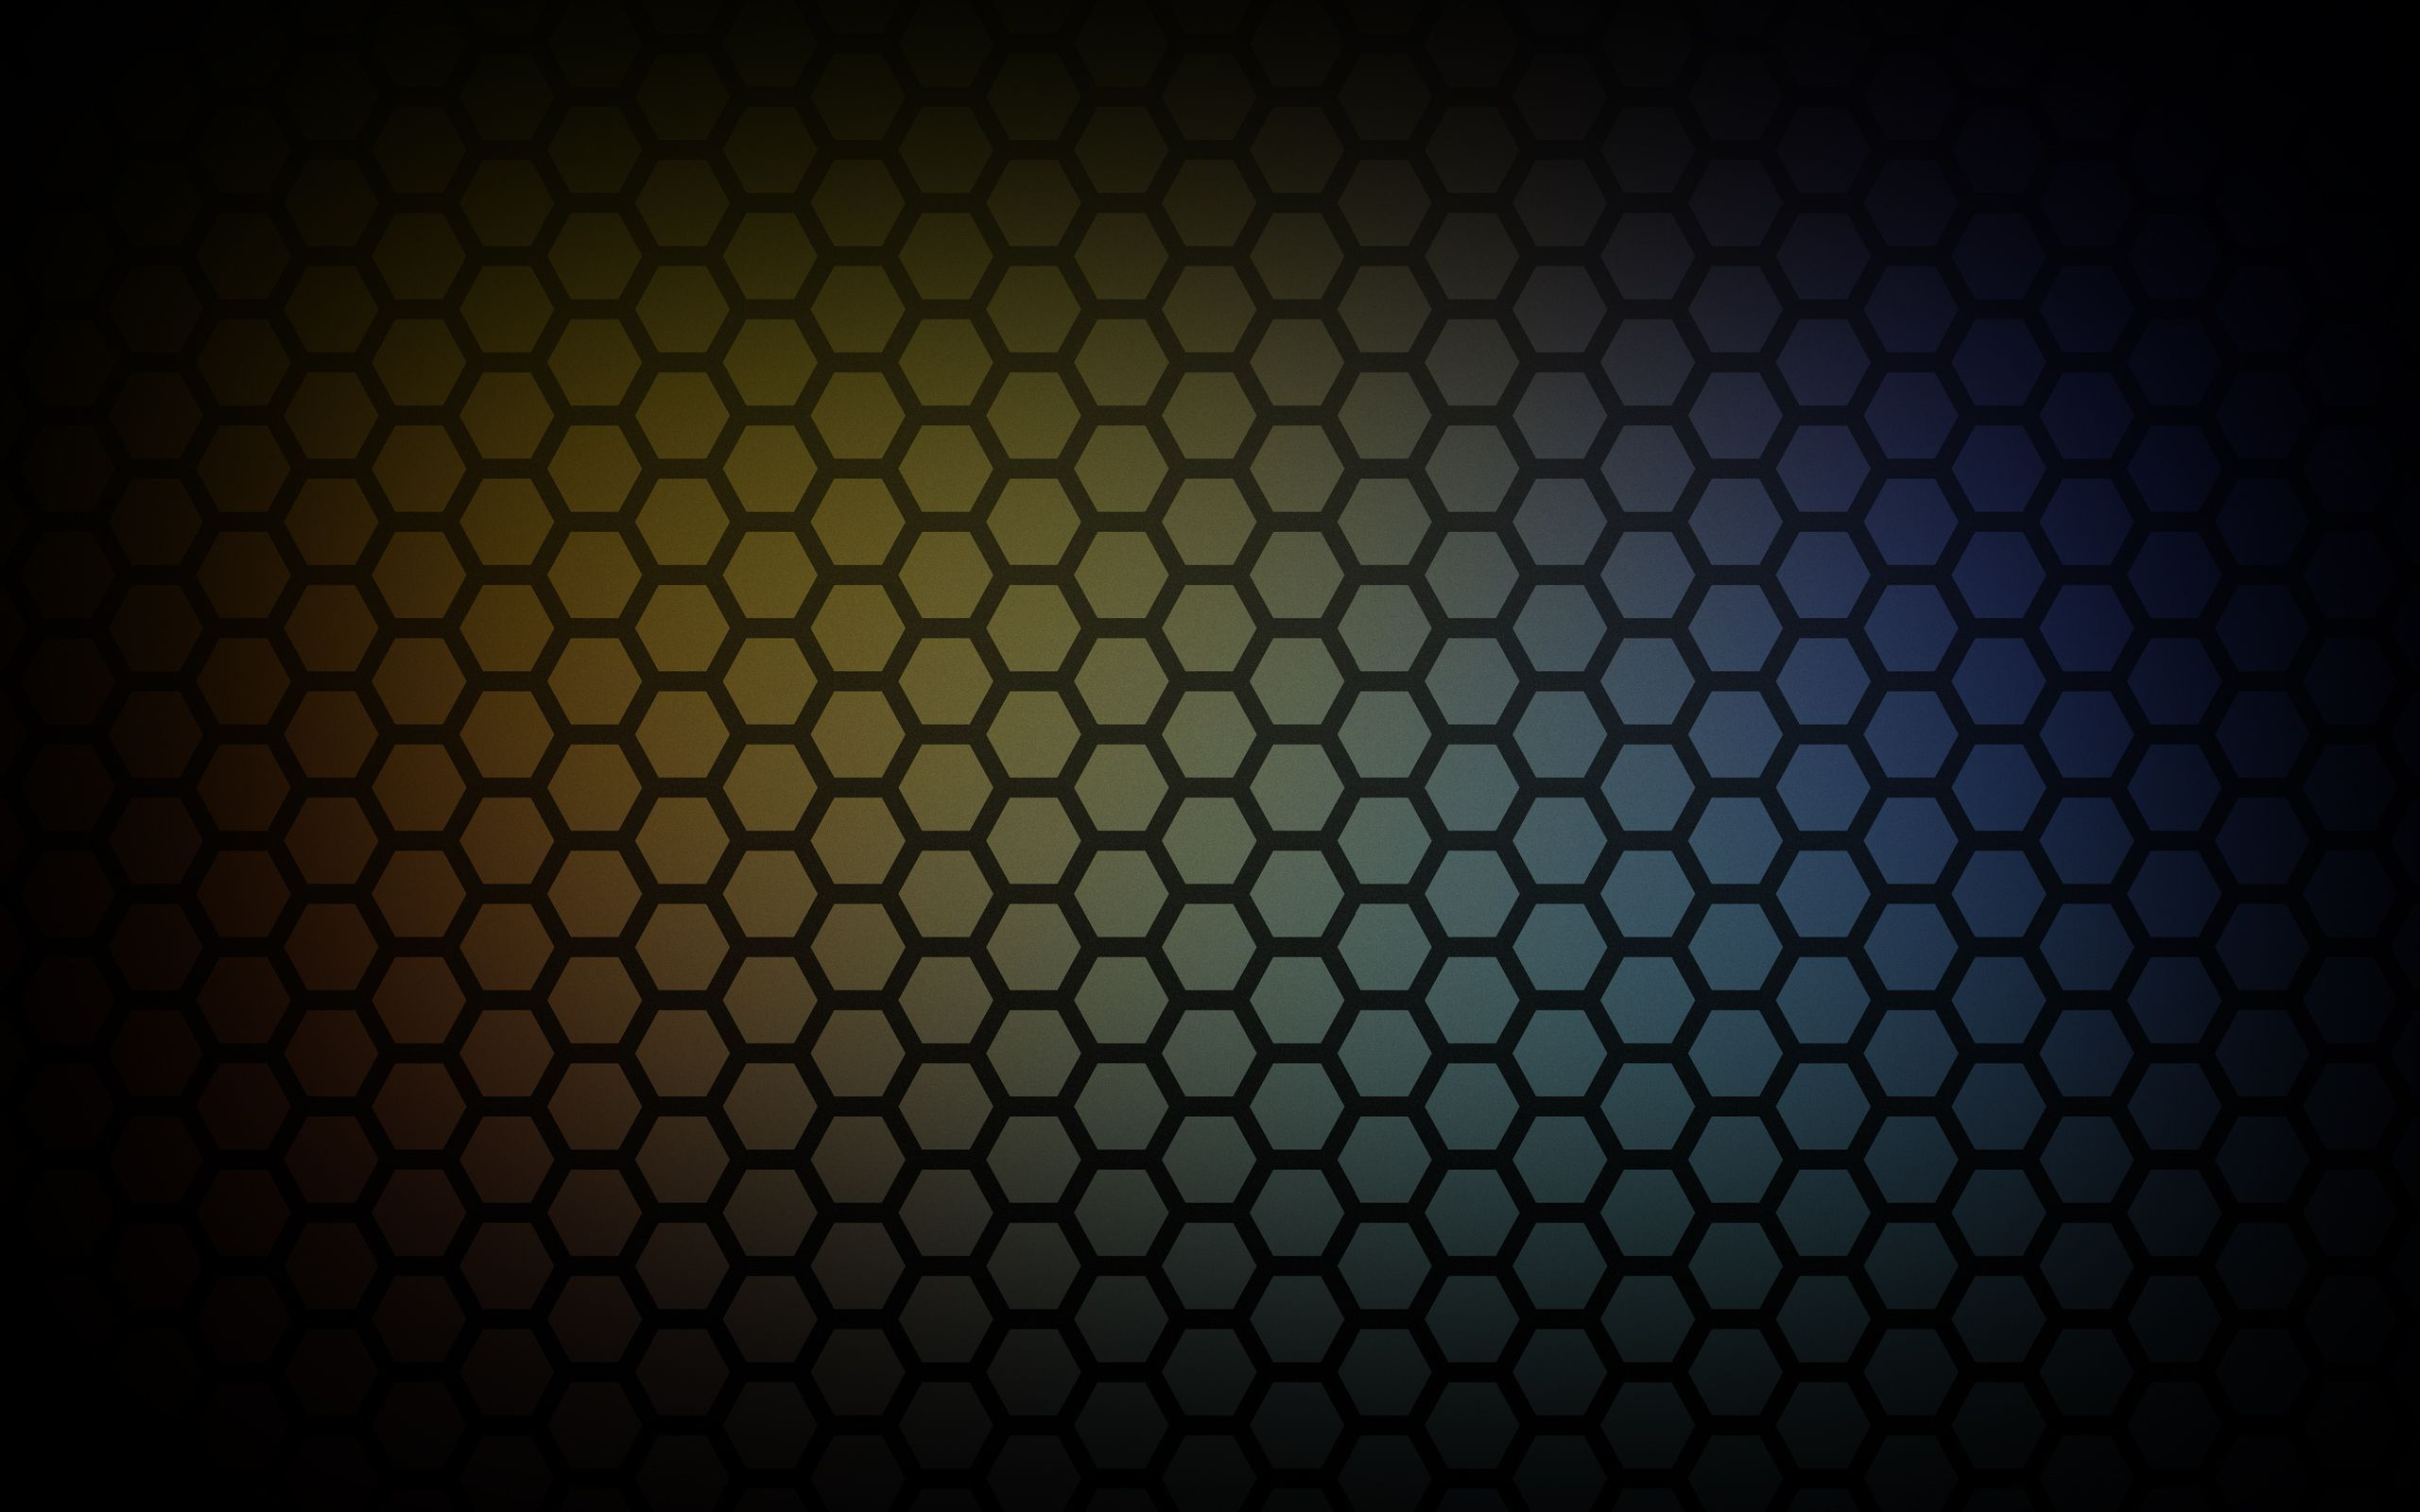 Cool Honeycomb Wallpaper